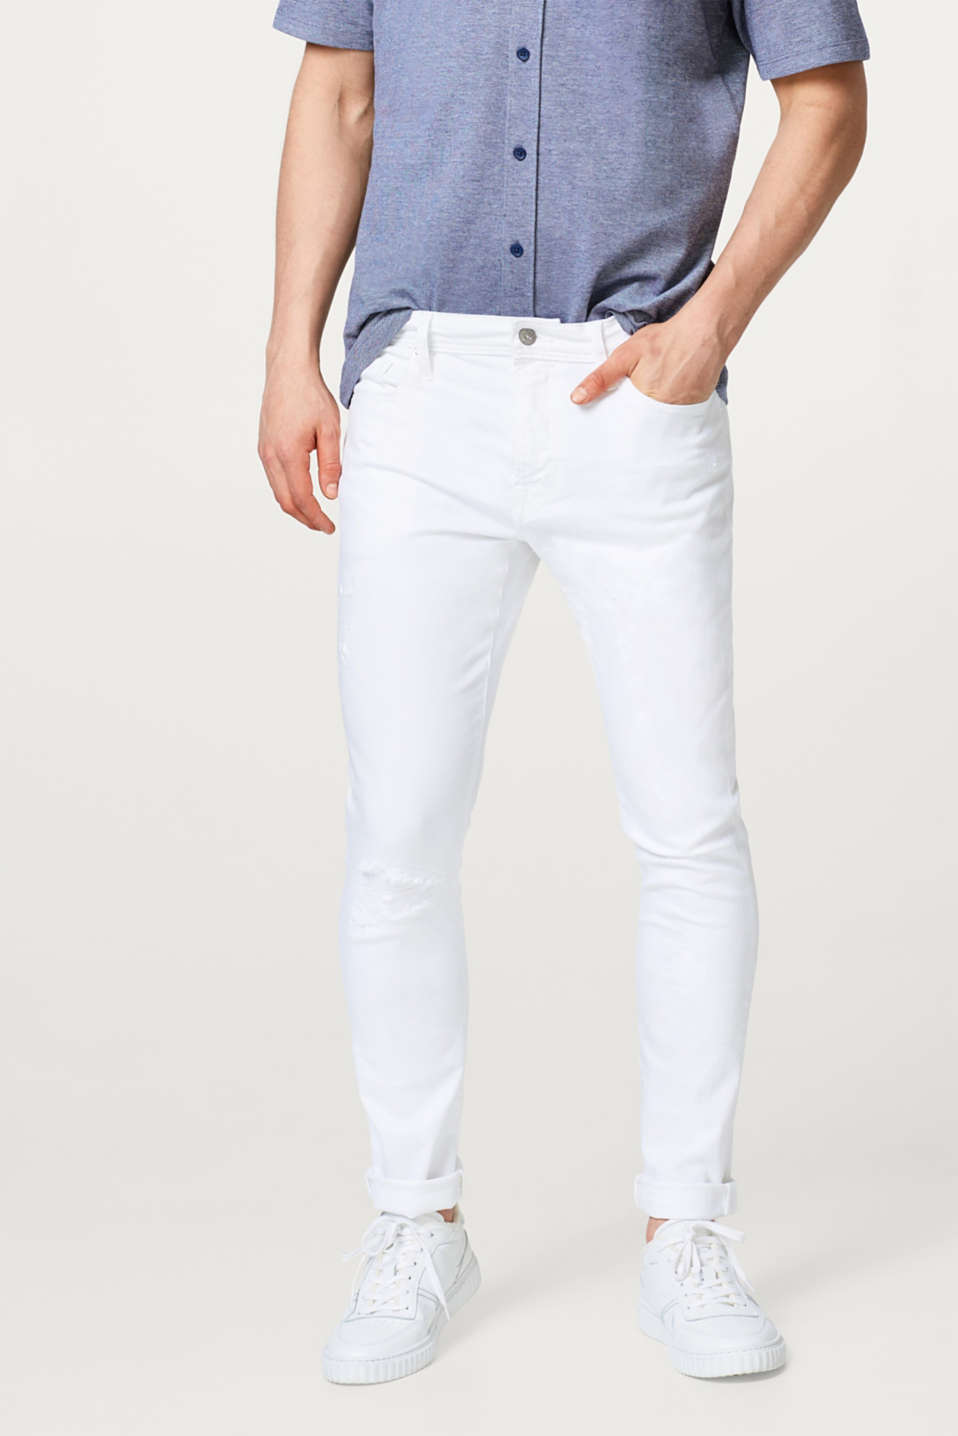 edc - Destroyed stretch white jeans